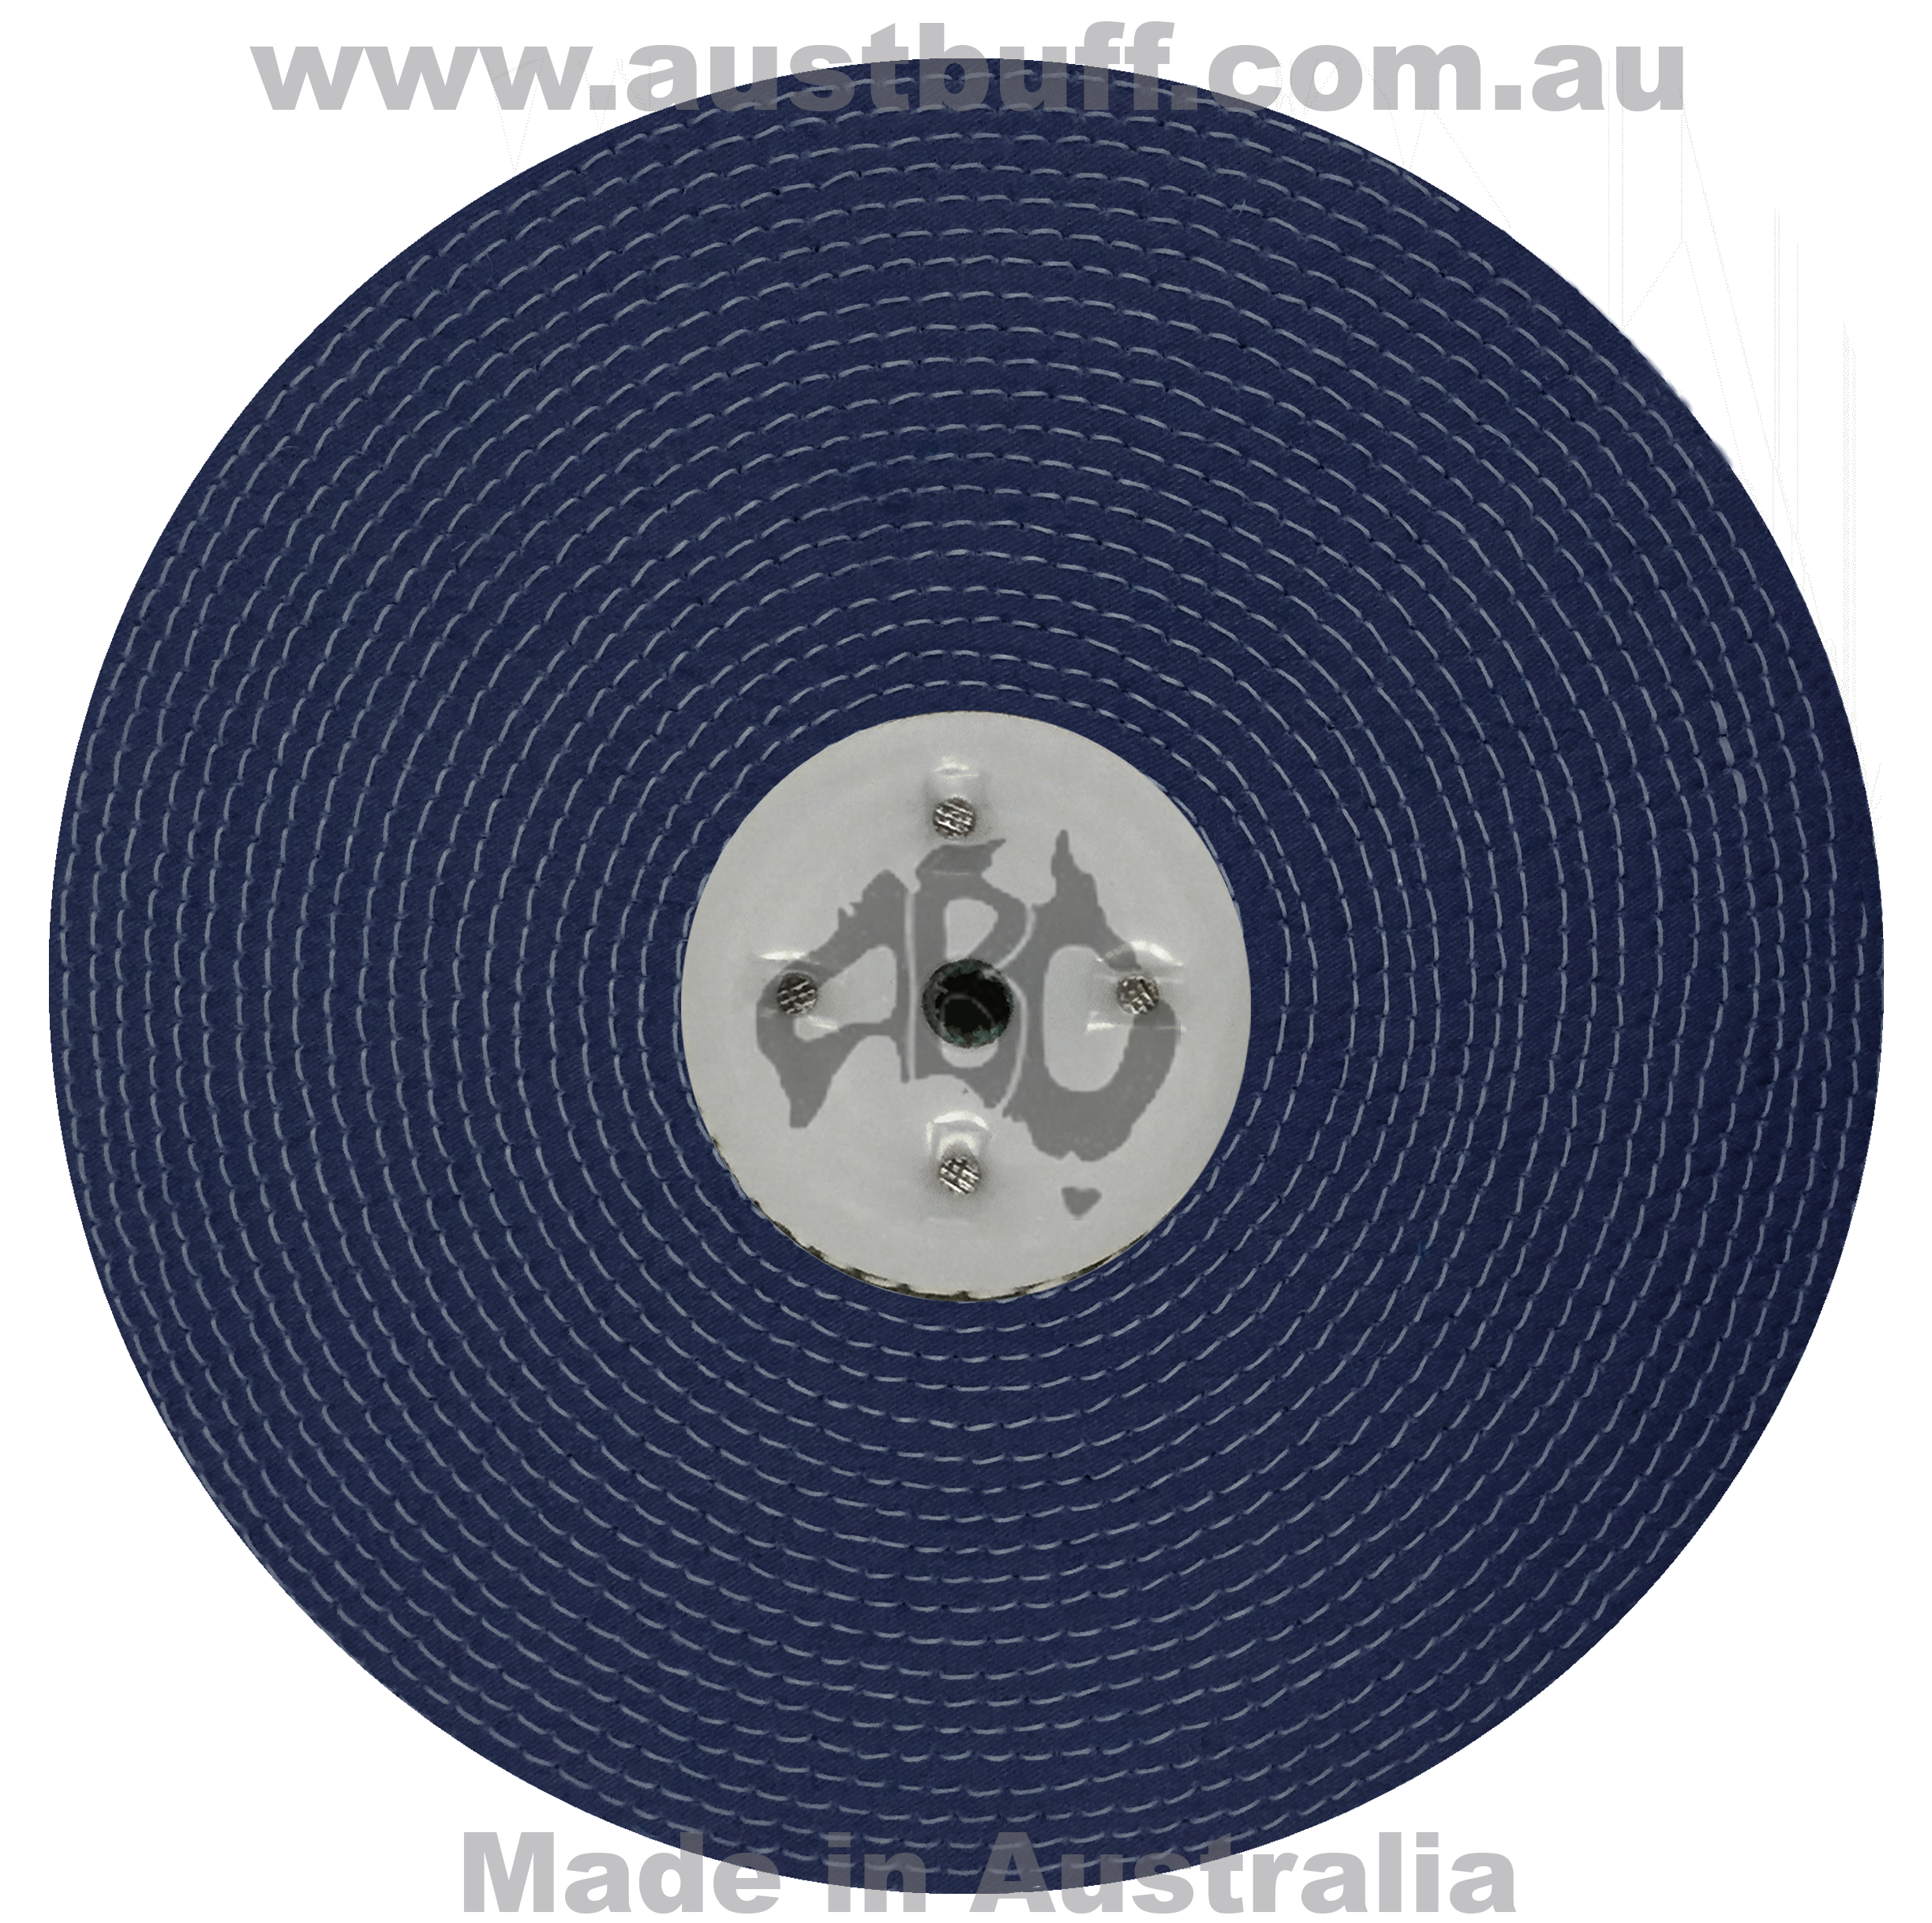 IT-sisal blue